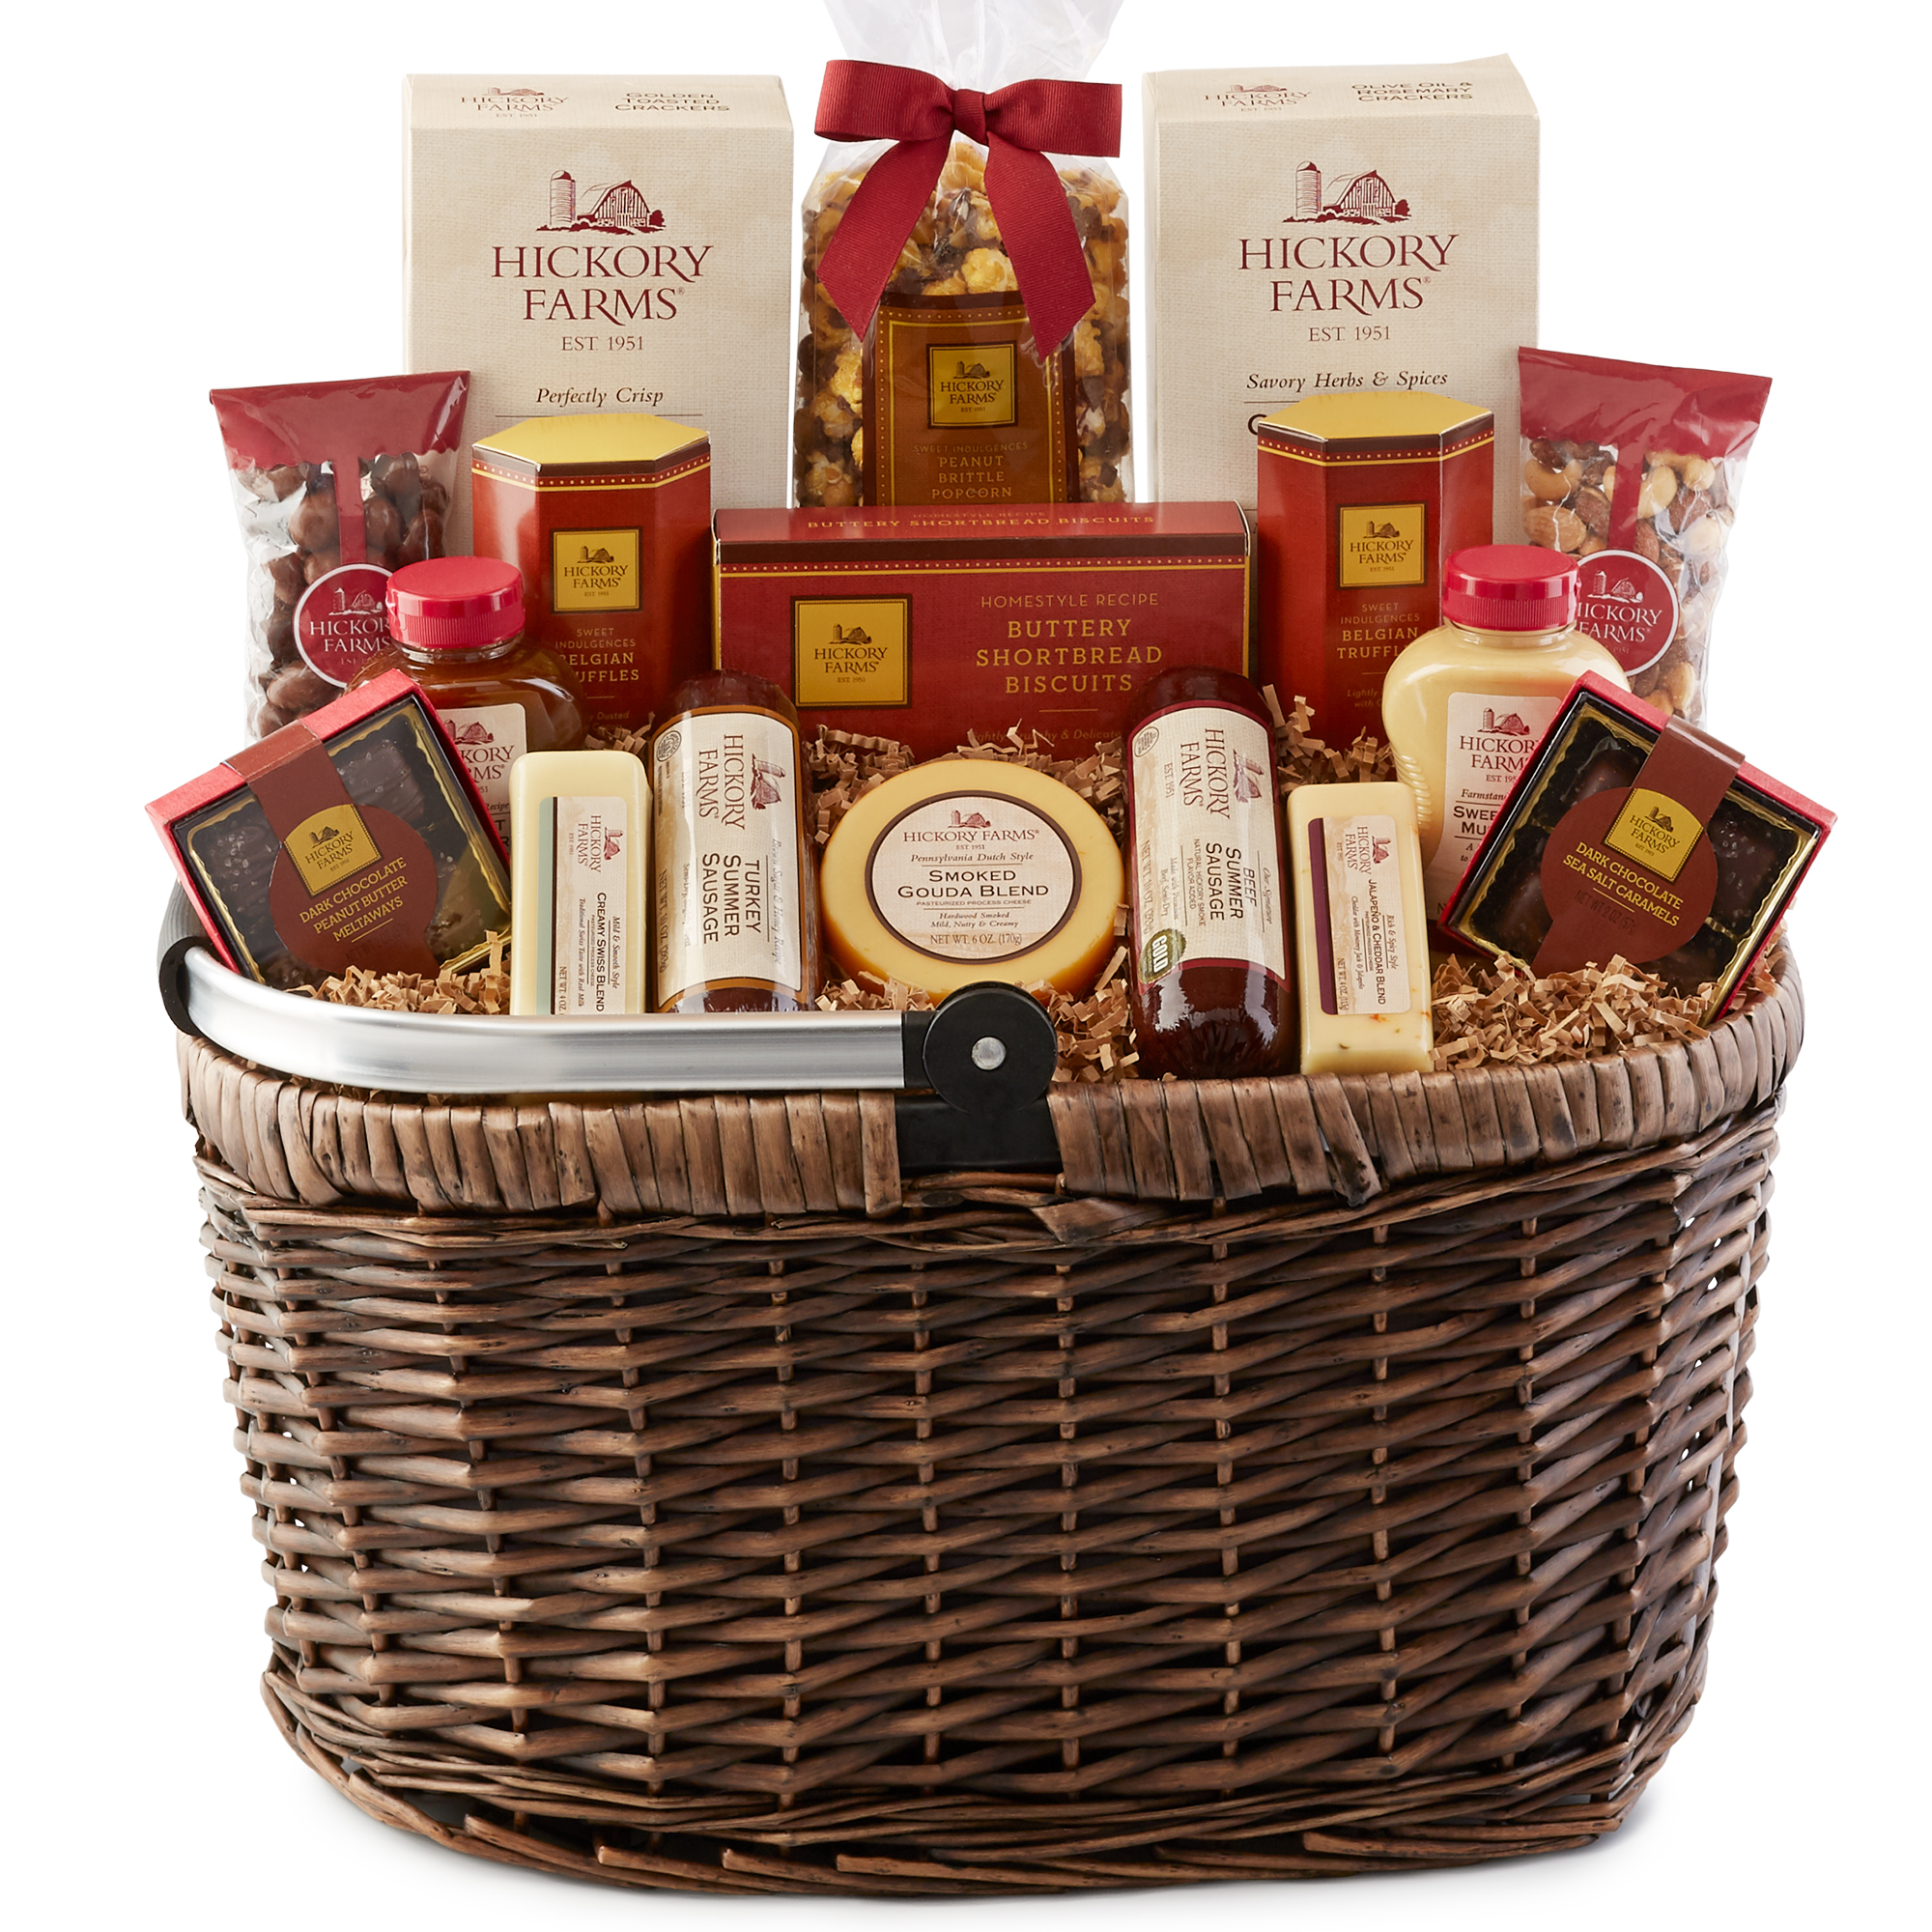 Hickory Farms Picnic Basket includes sausage, cheese, mustard, crackers, nuts, and